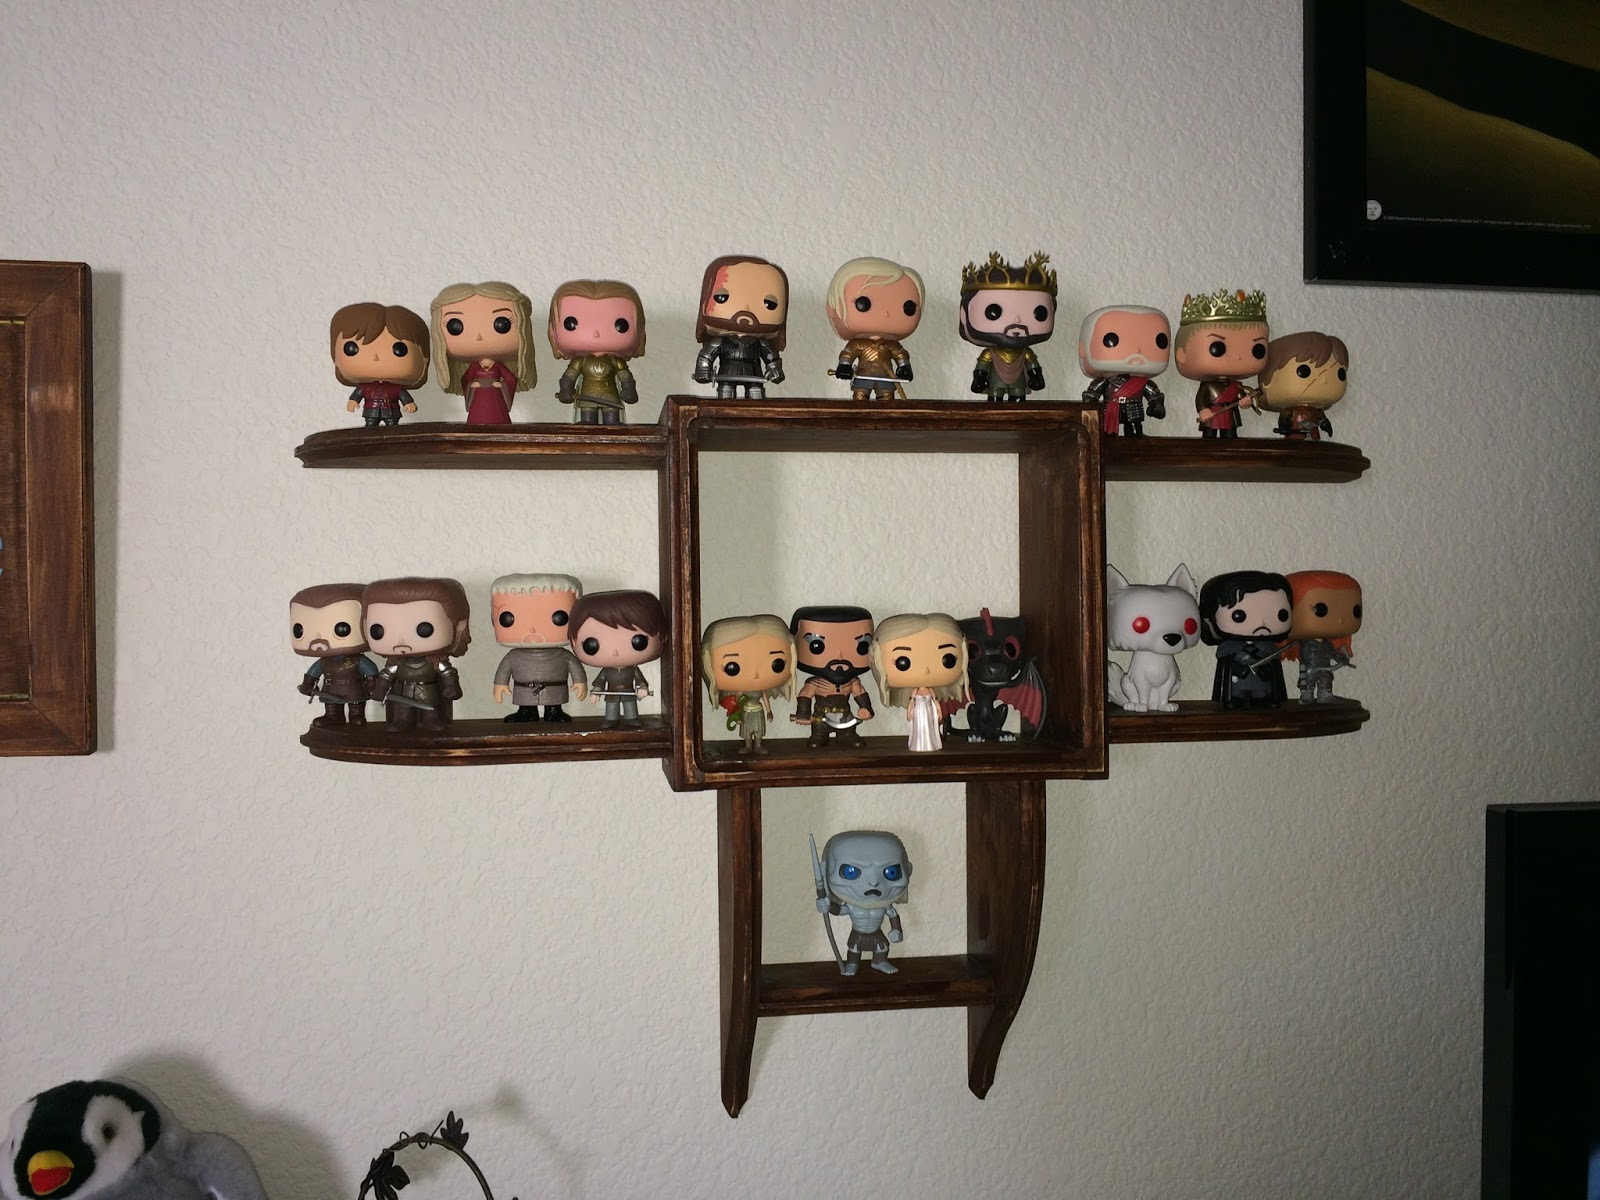 Timbo39s Creations Wall Display Shelf For Funko Pop Figures